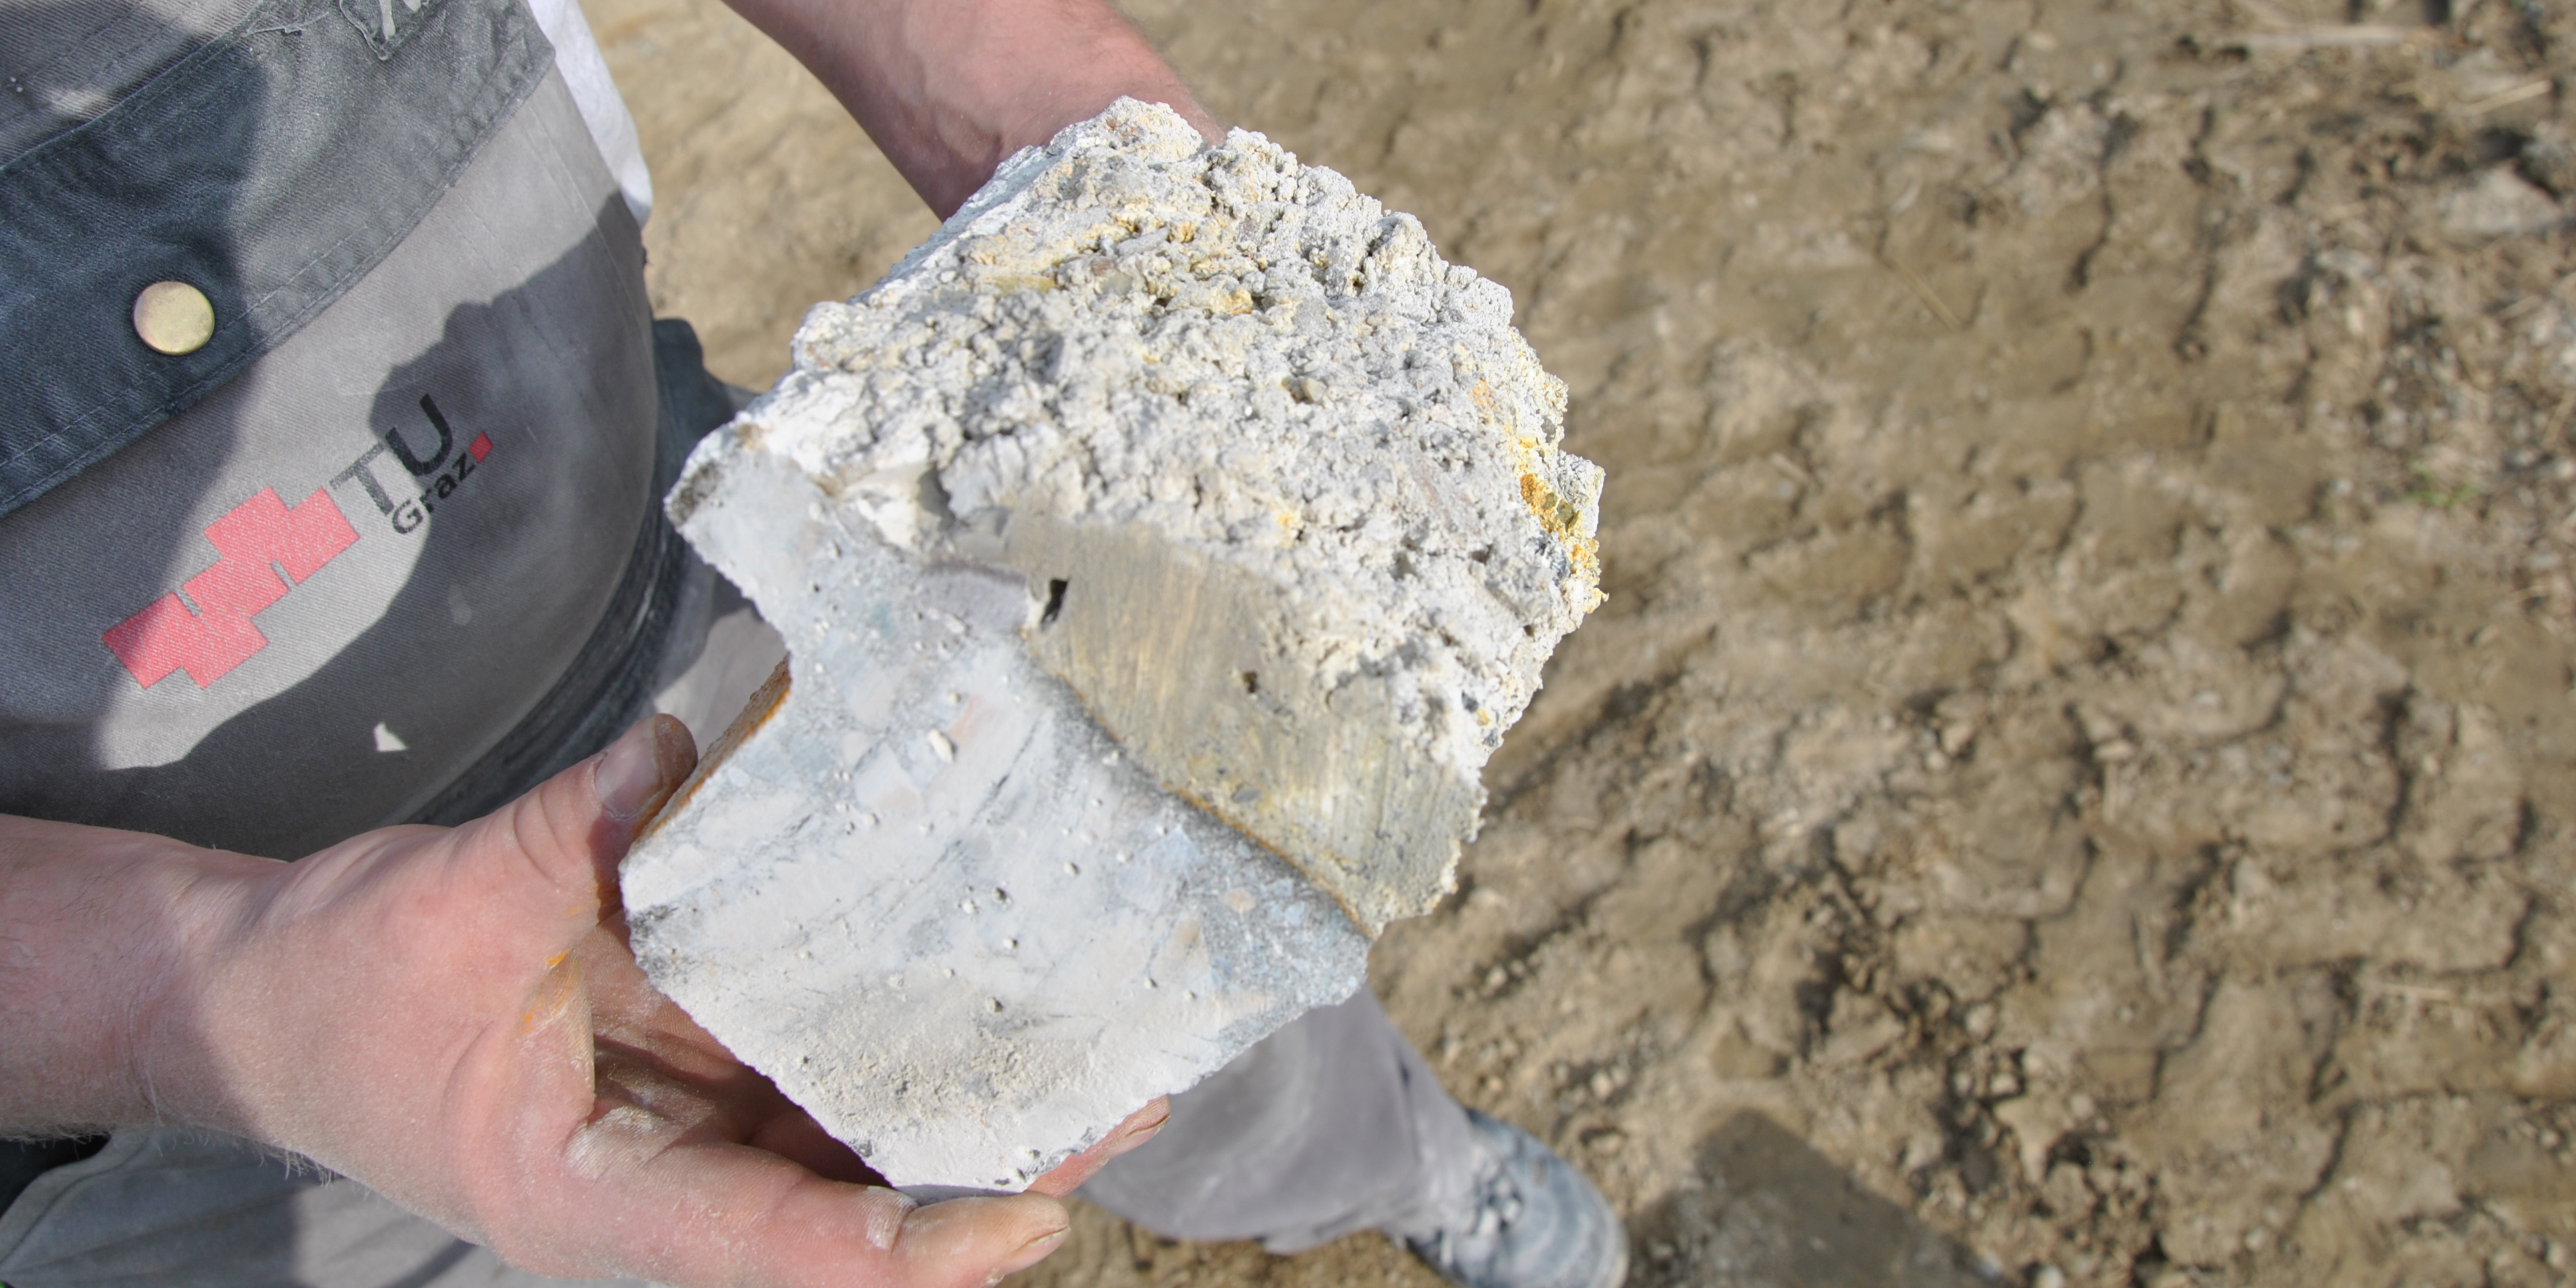 A male hand holds a concrete part damaged by microbial induced concrete corrosion (MICC); a centimetre-thick deposit has formed on the part.